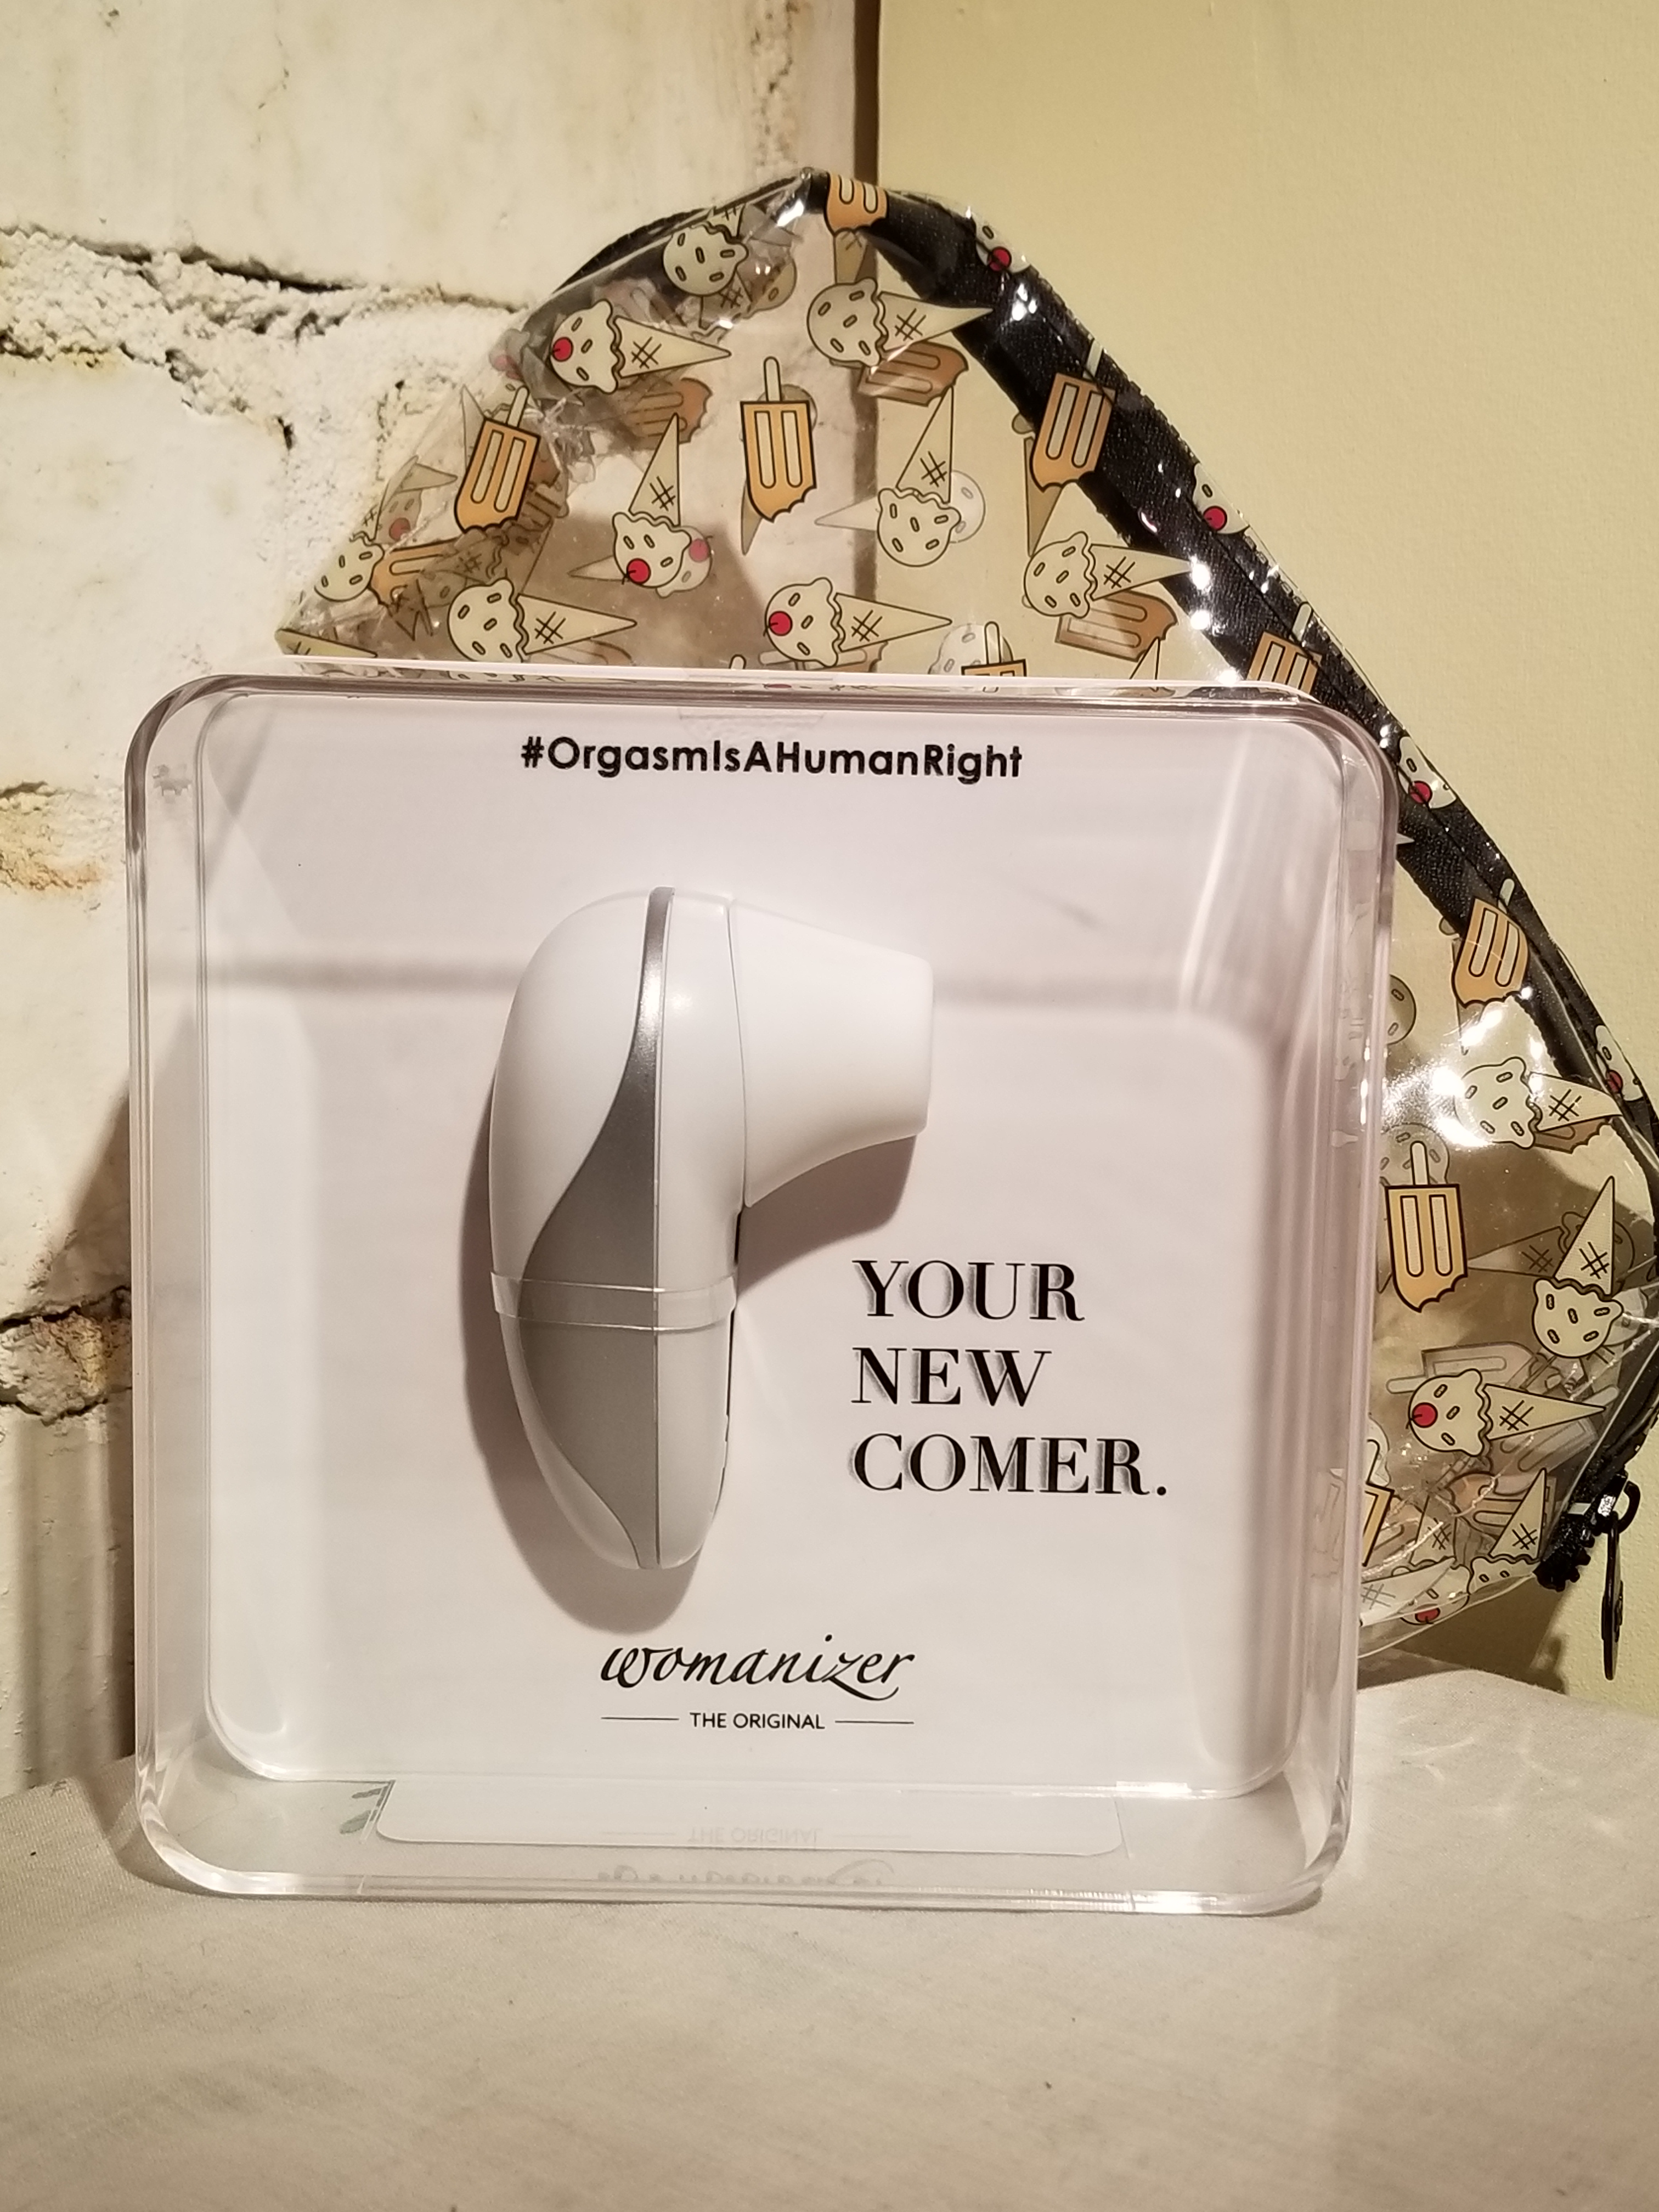 The Womanizer Starlet sits in a clear plastic case. The Starlet is about three and a half inches tall with a nozzle for suction. It is while with silver accents.